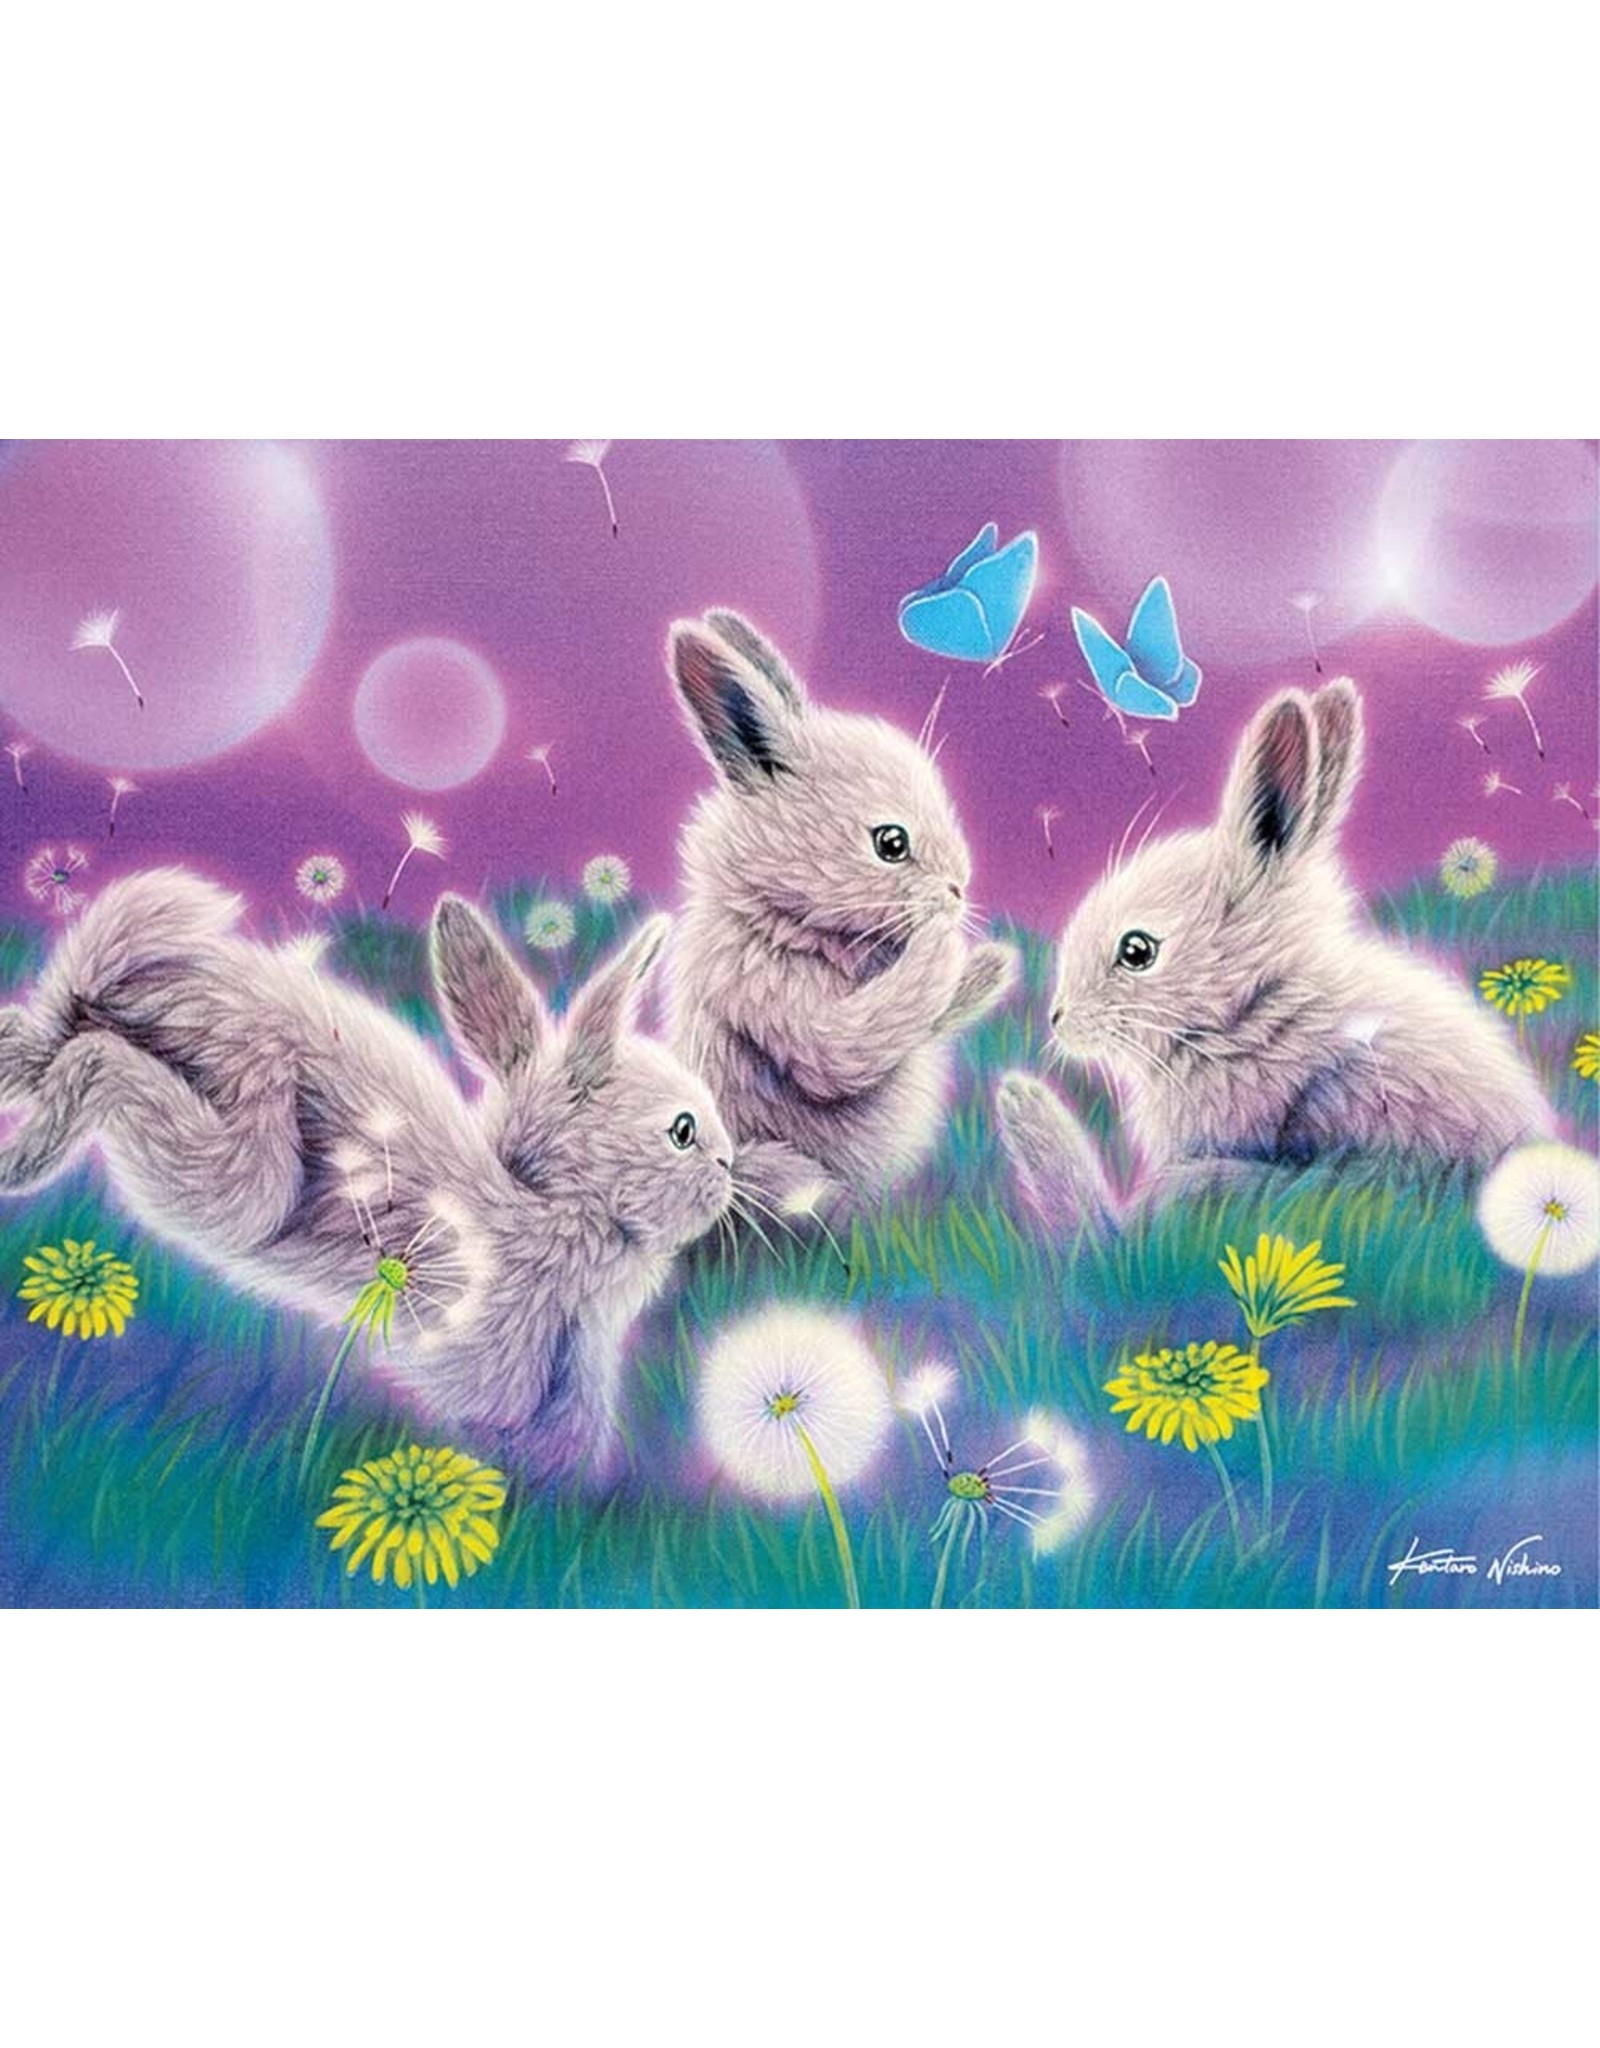 """Ceaco Furry Friends Collection: """"Spring Has Come"""" 100 Piece Puzzle"""